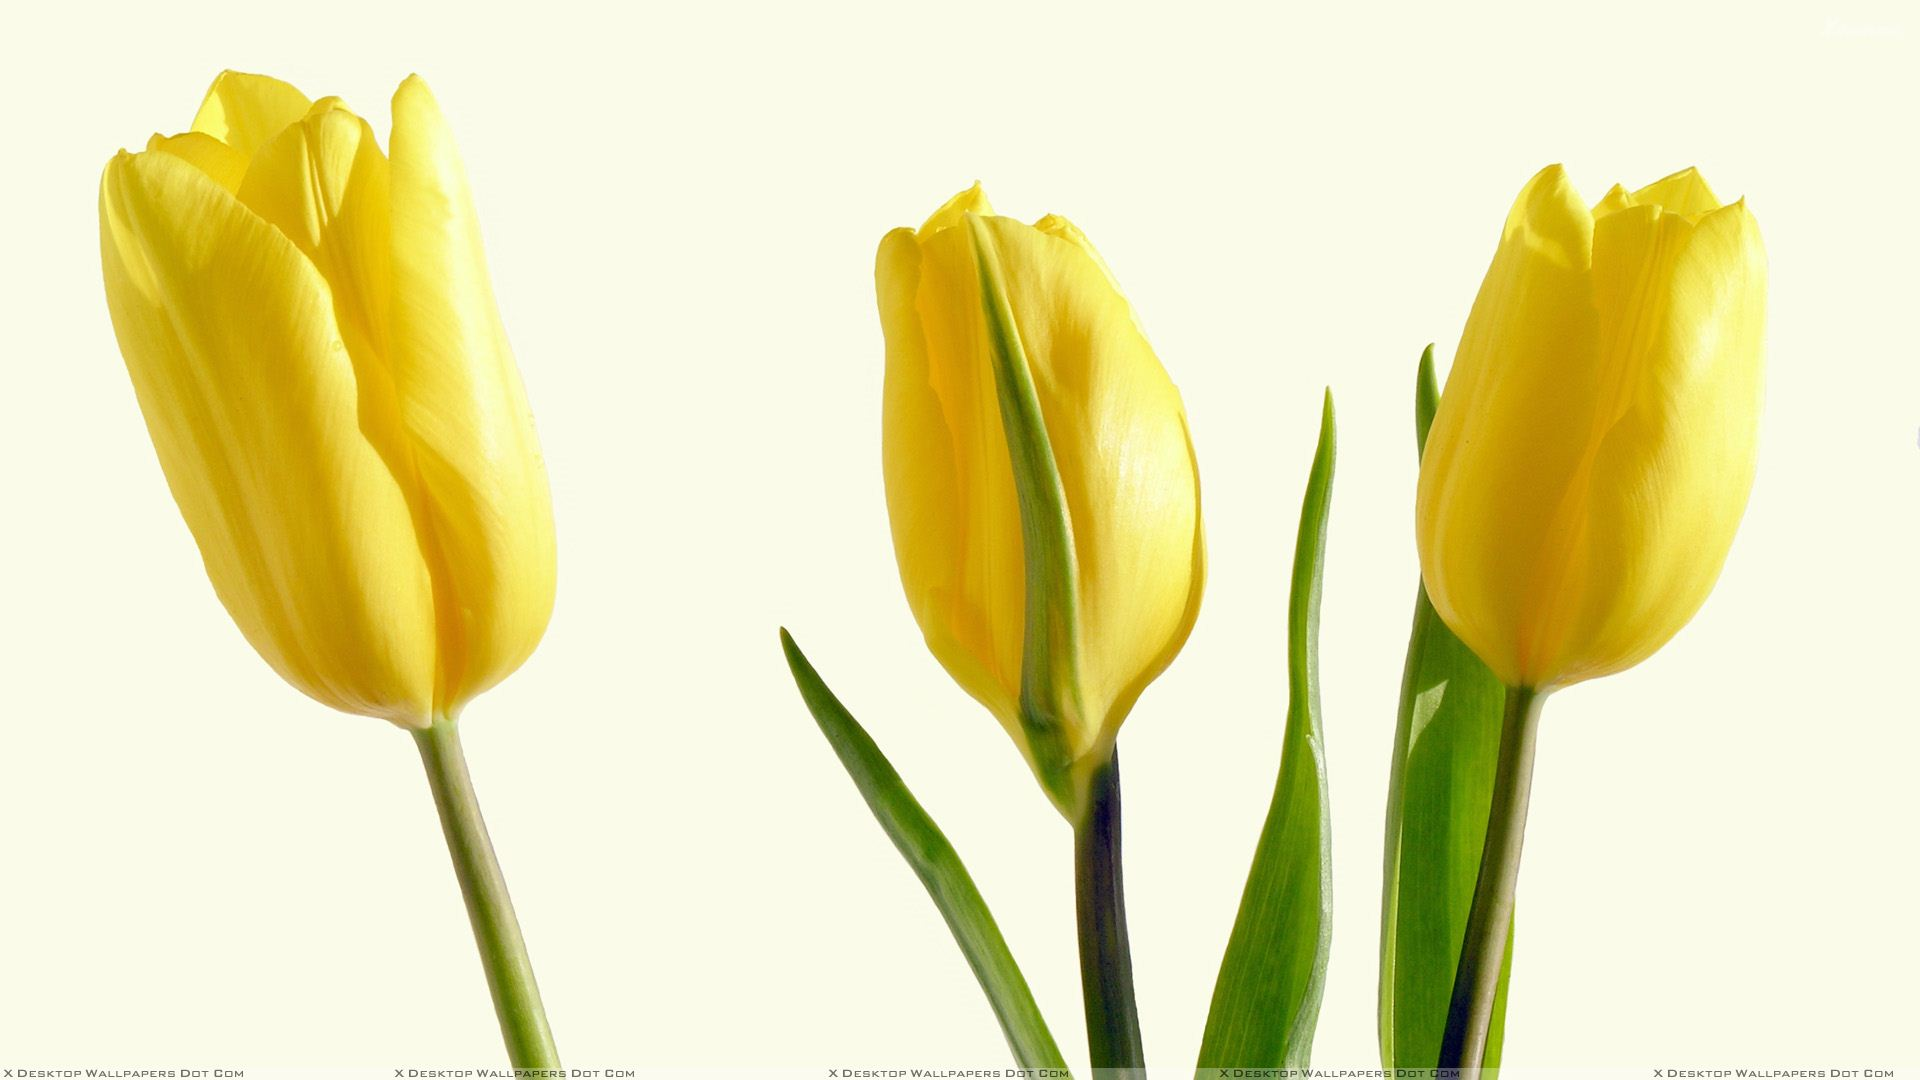 Yellow tulips 3 high resolution wallpaper hdflowerwallpaper yellow tulips hd wallpaper mightylinksfo Gallery